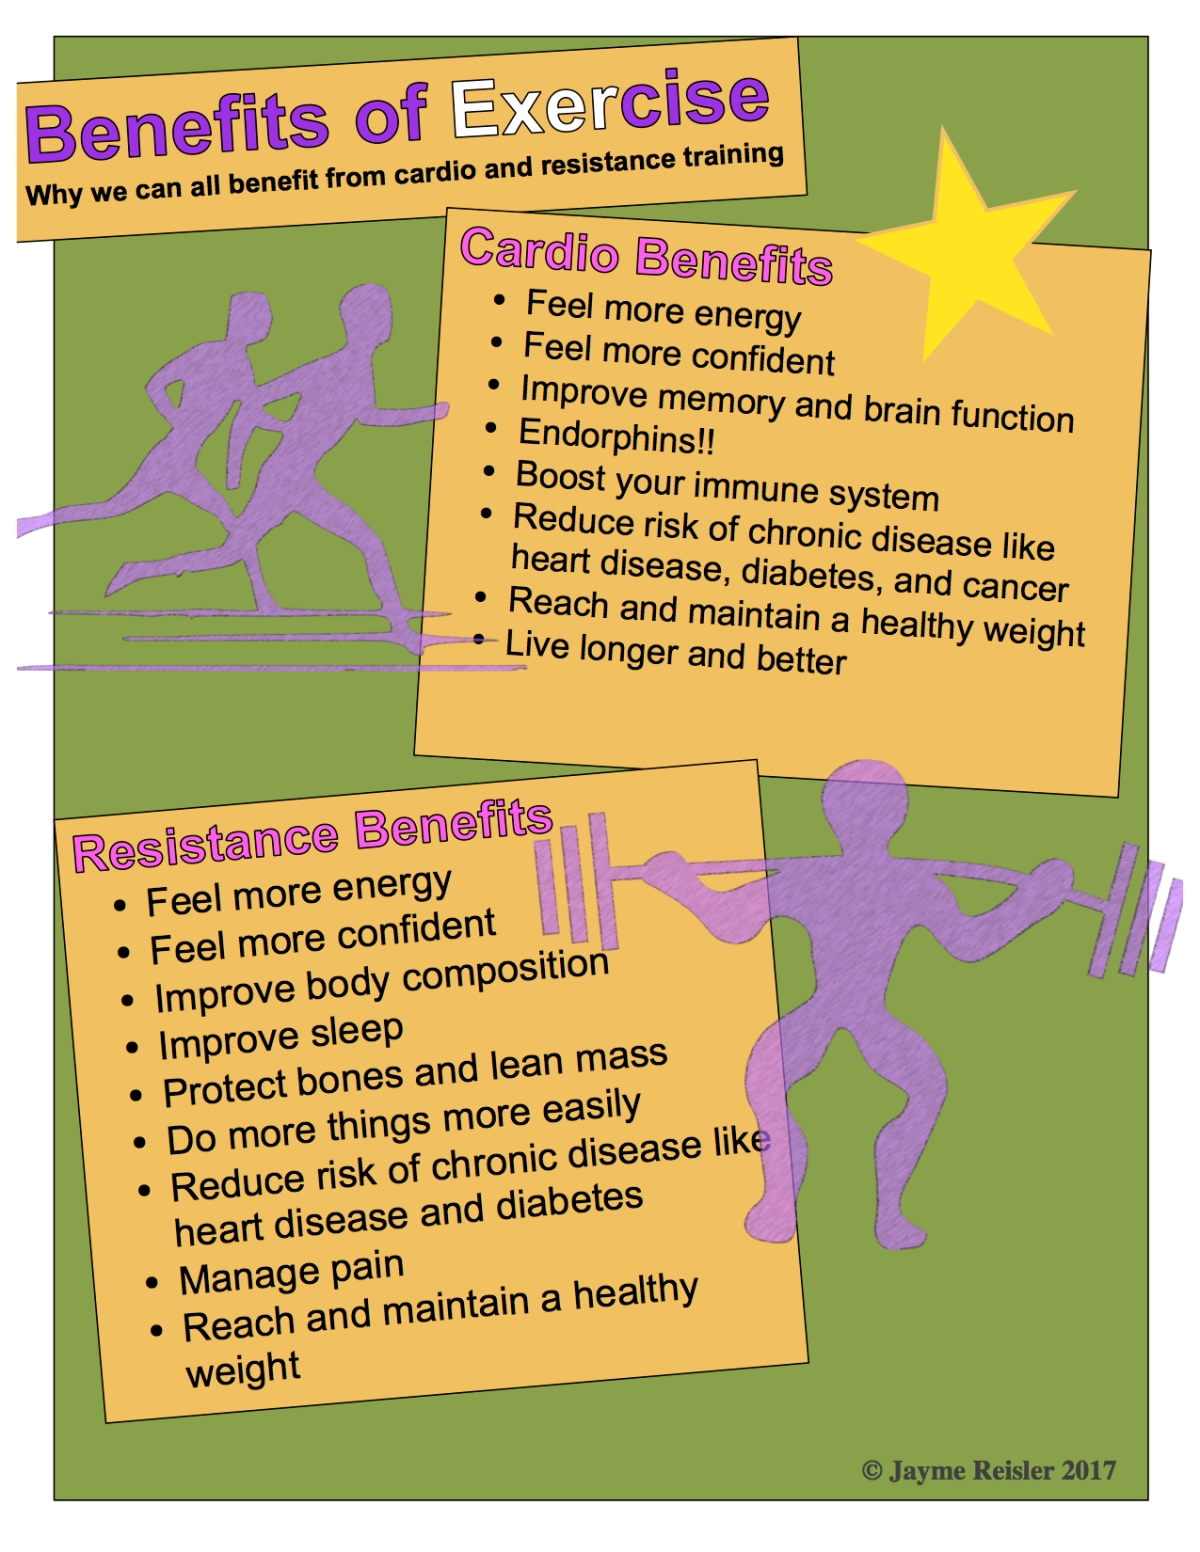 Benefits of exercise poster